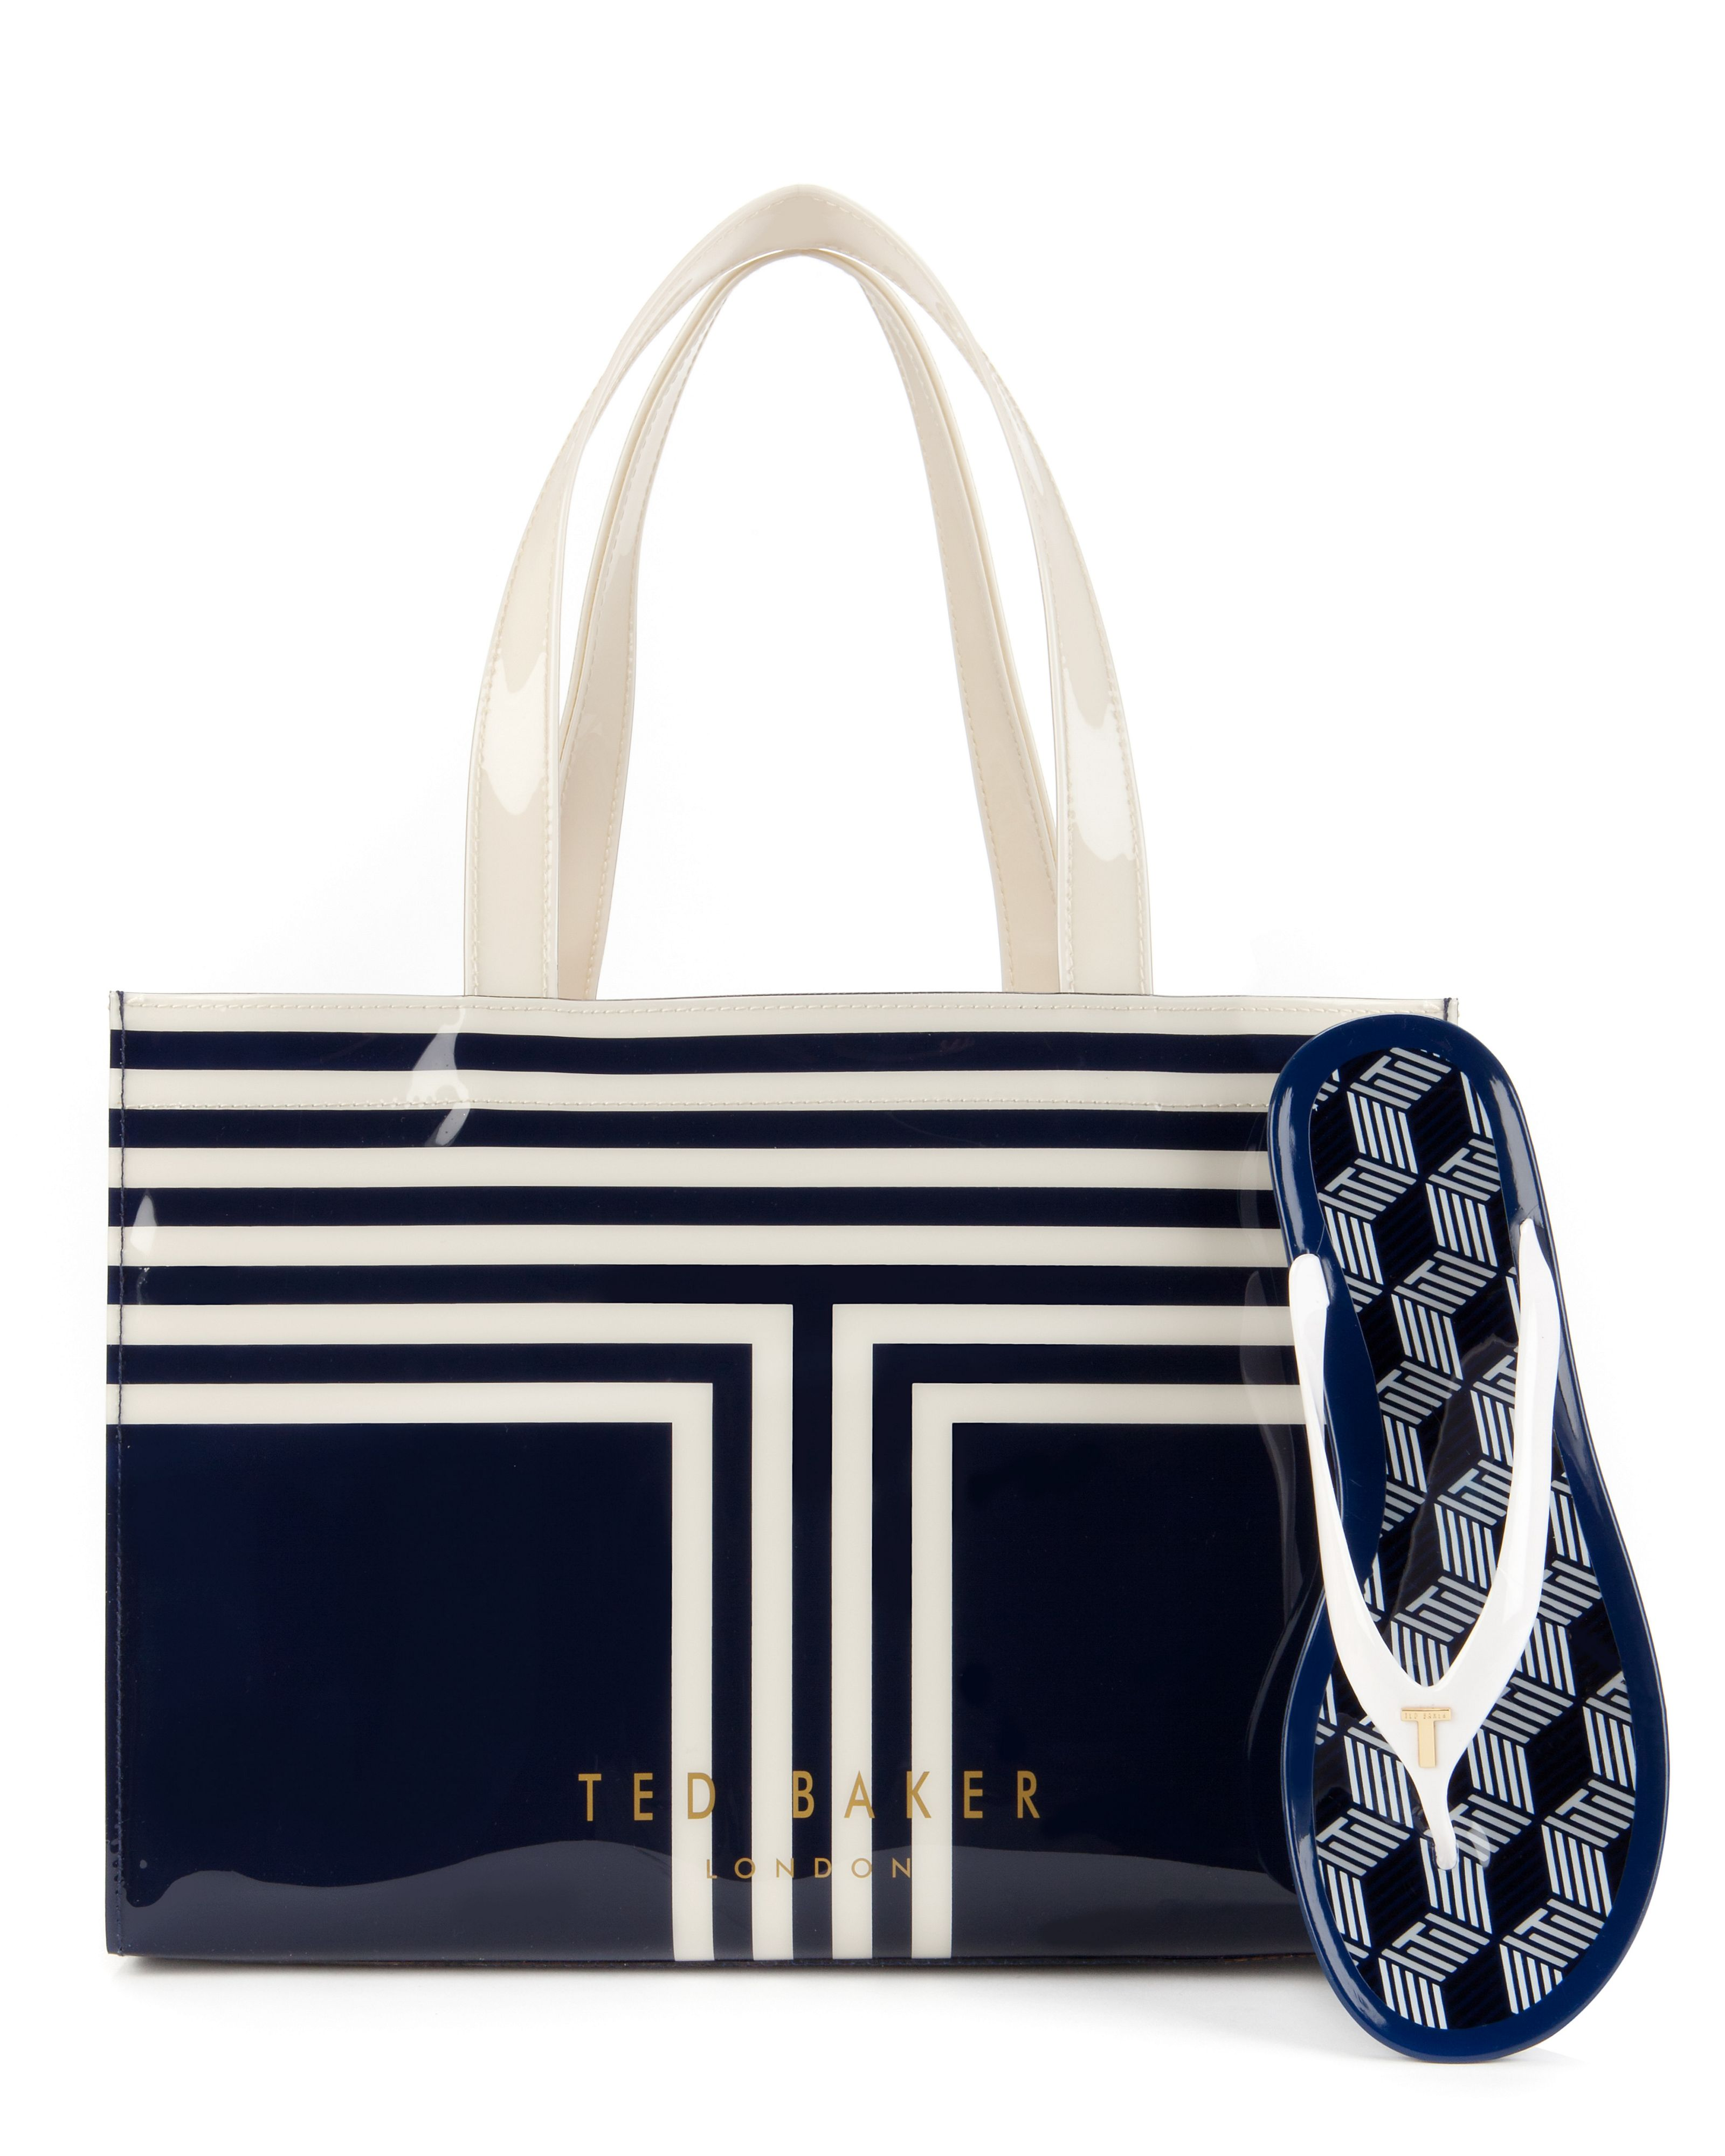 Tebag striped shopper bag